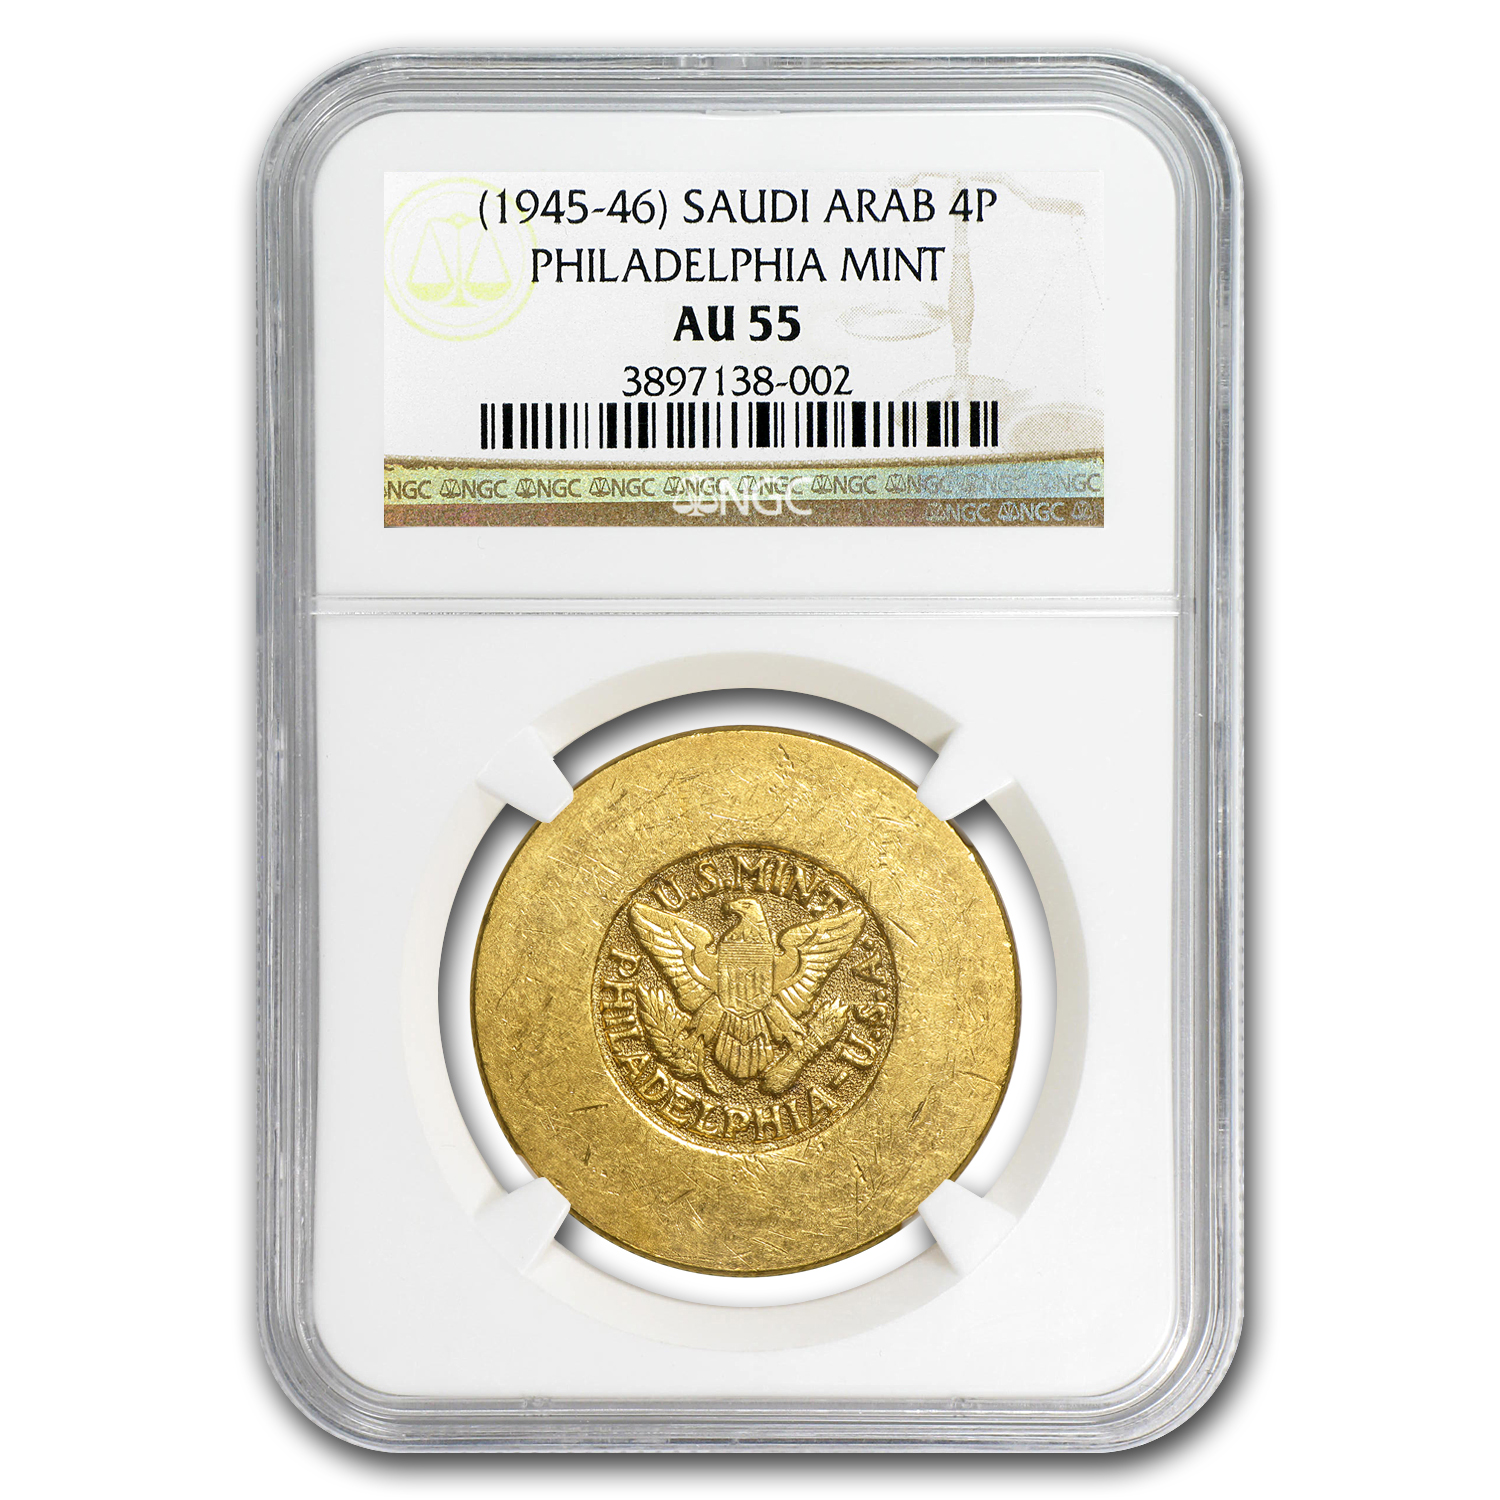 1945-46 Saudi Arabia Gold 4 Pounds ARAMCO US Mint AU-55 NGC